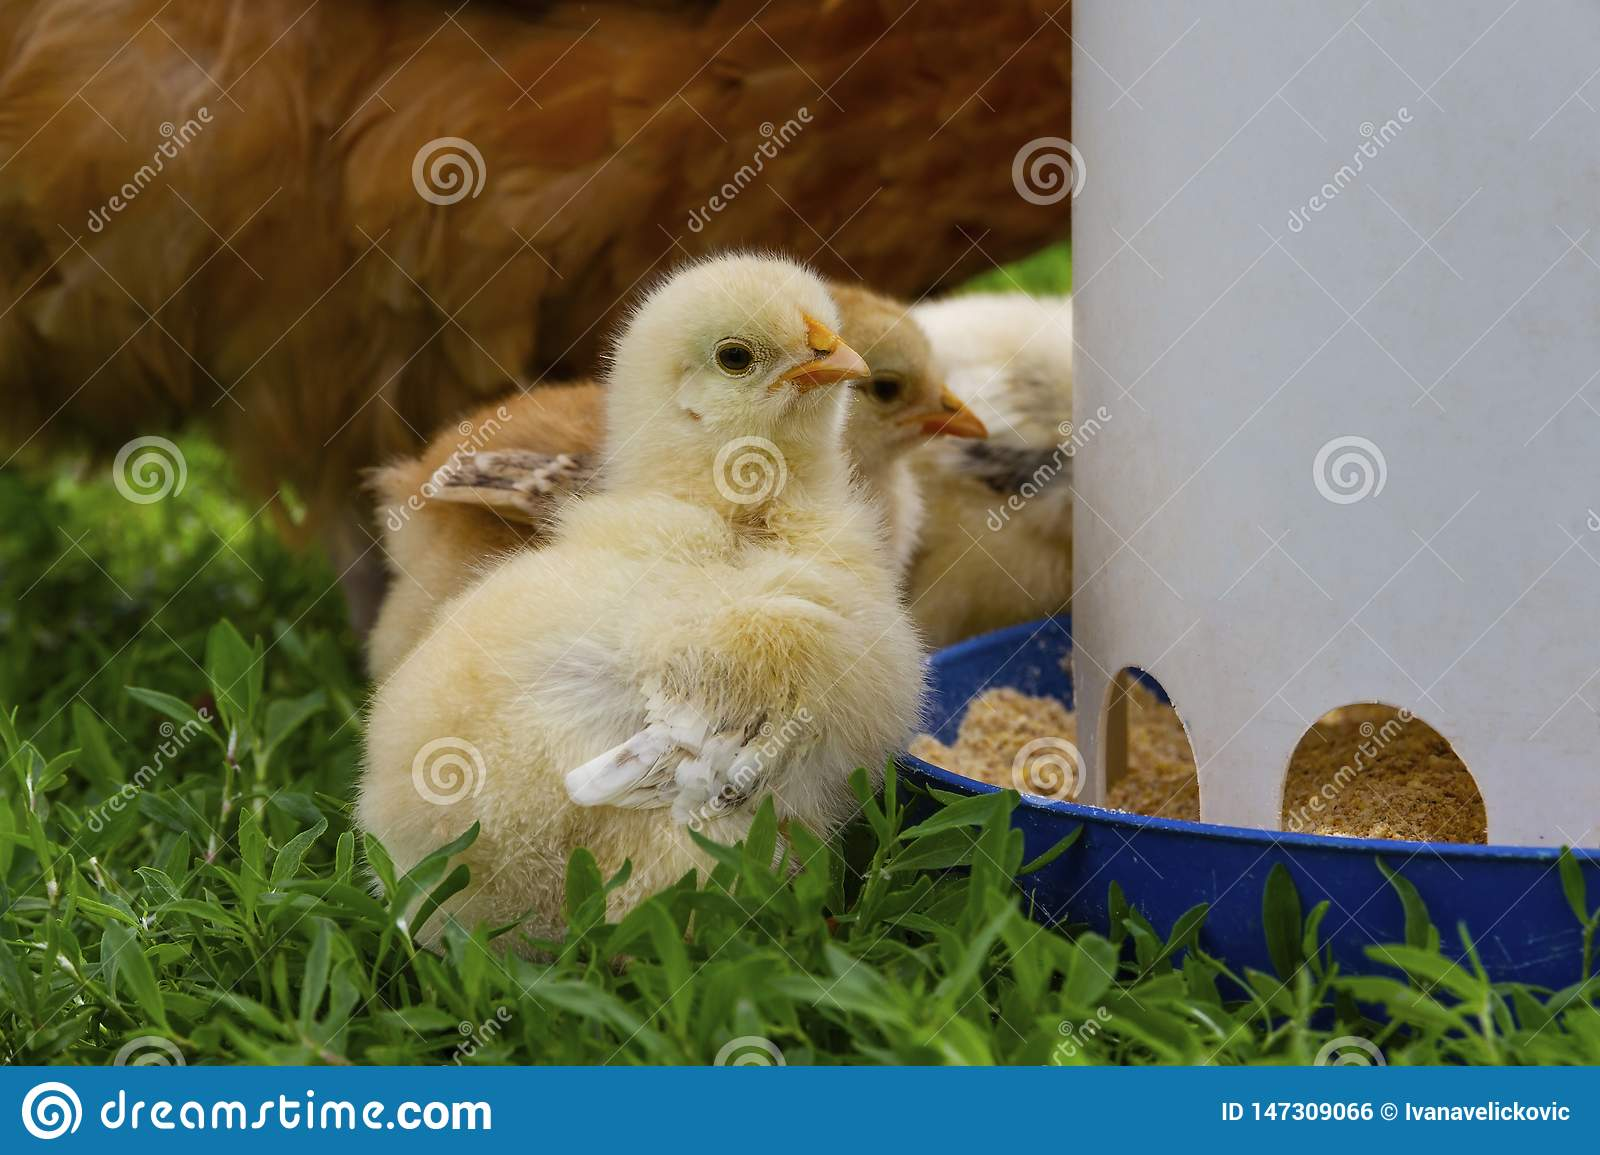 Two weeks old chicks eating from a feeder